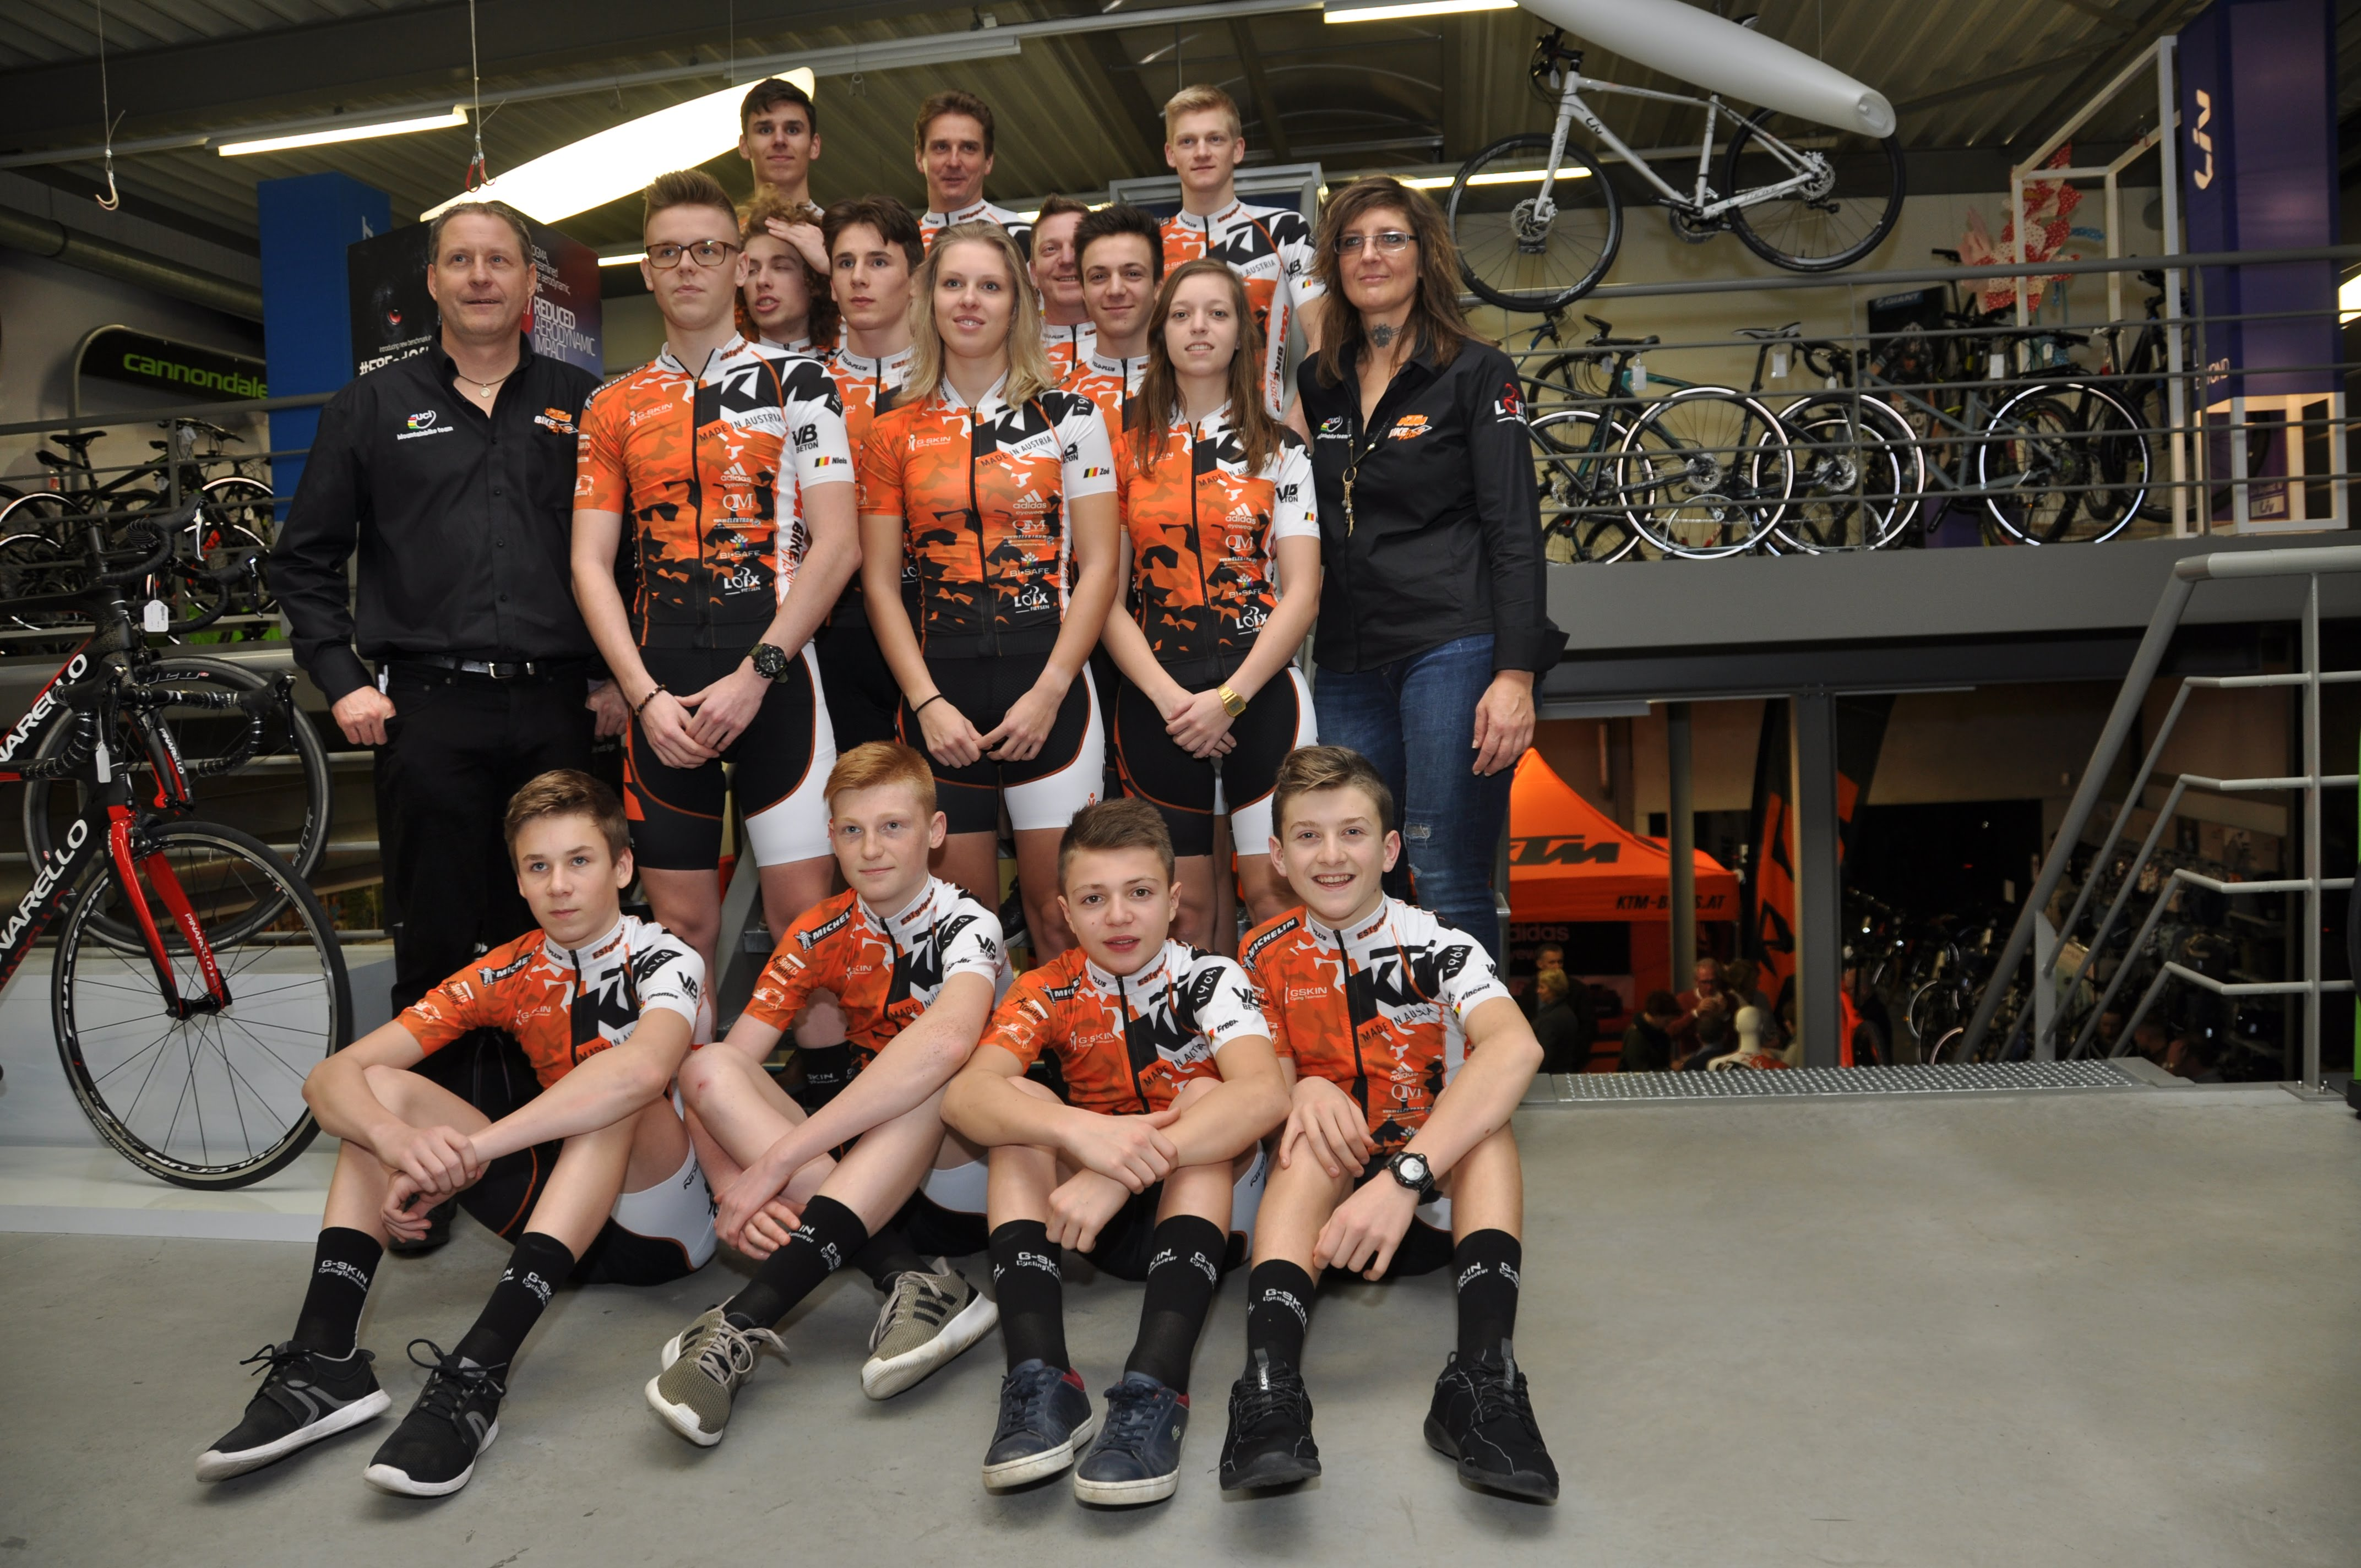 KTM Bike Vision UCI MTB team voorgesteld in Brustem